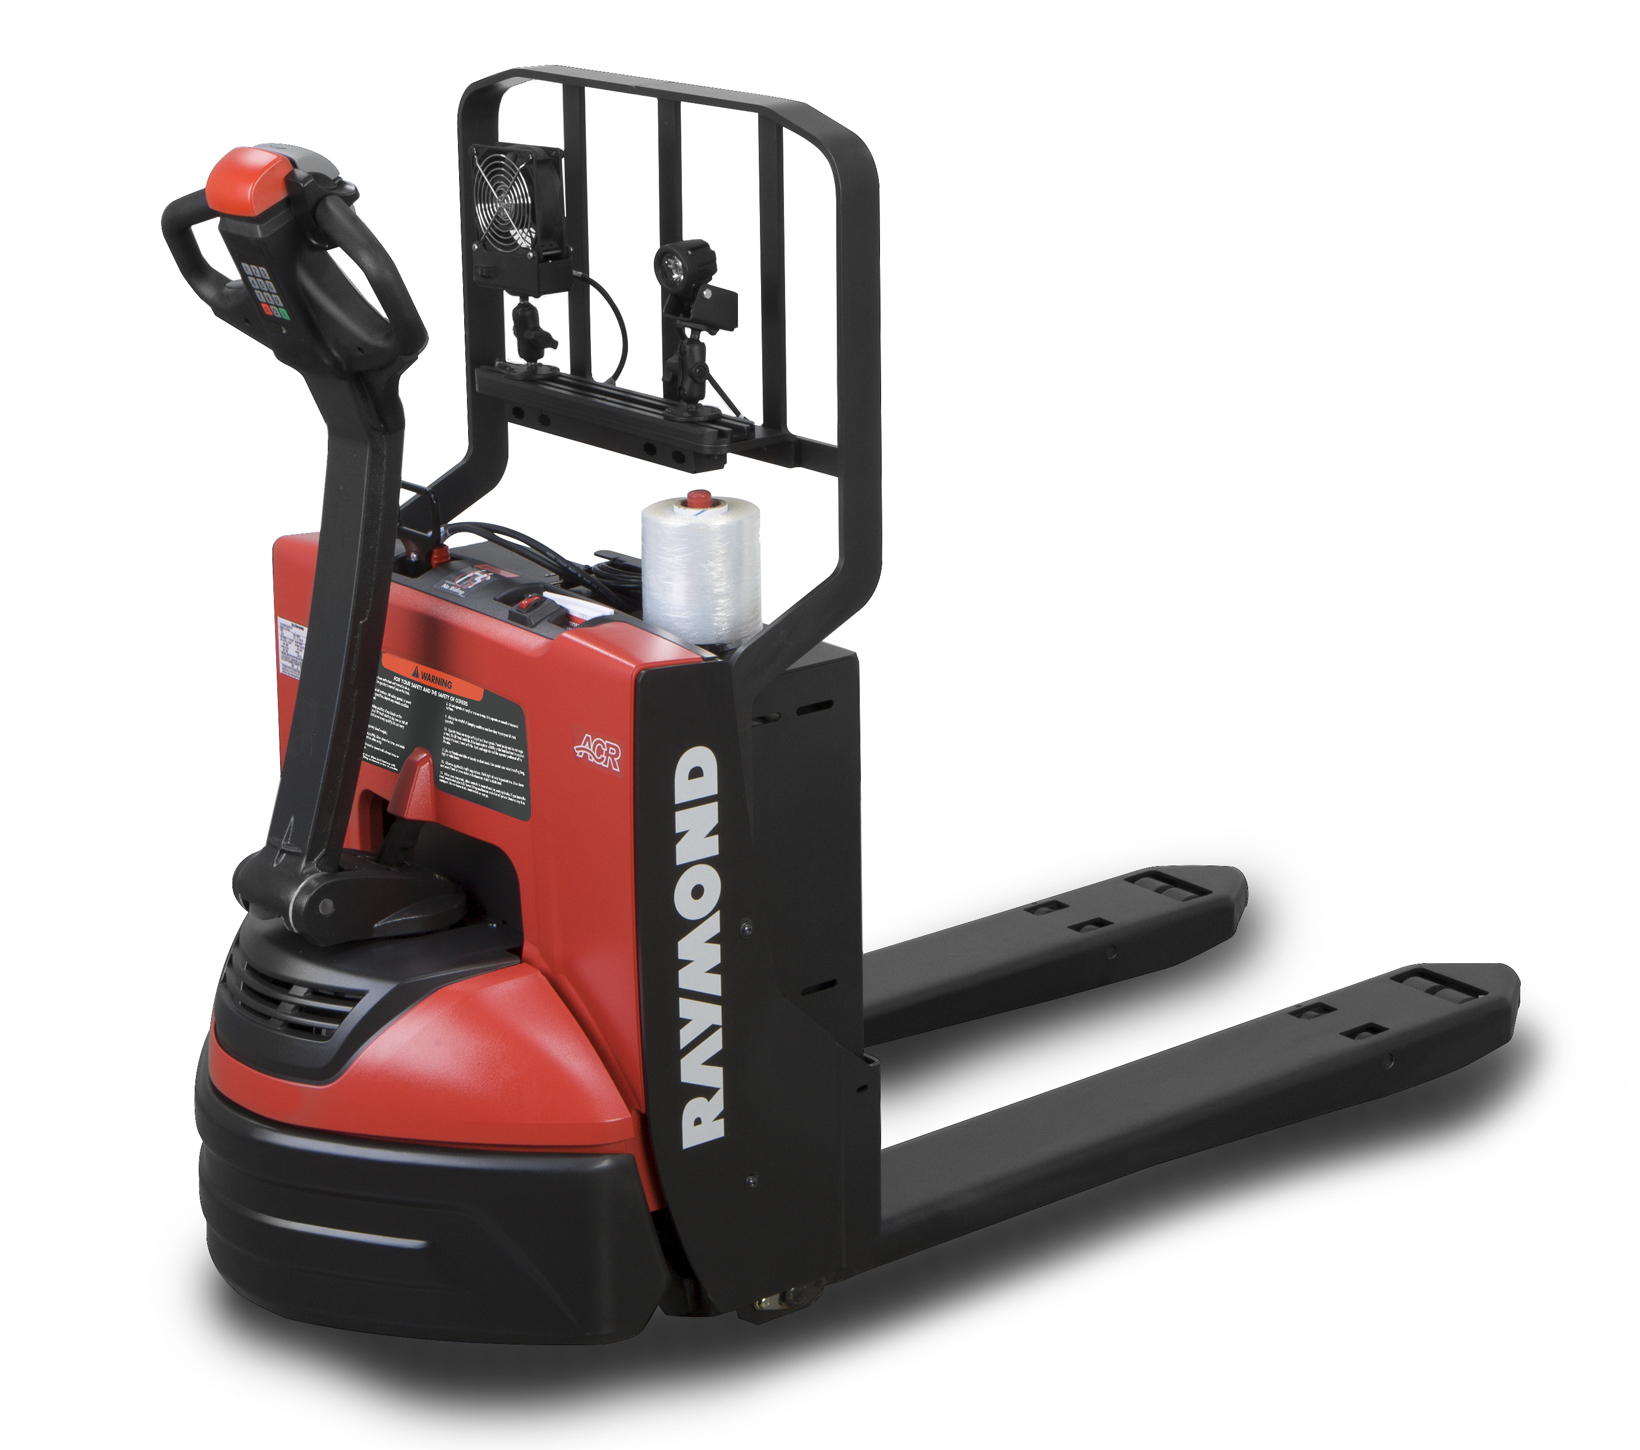 Motorized pallet jack training forklift rentals electric for Motorized pallet jack rental